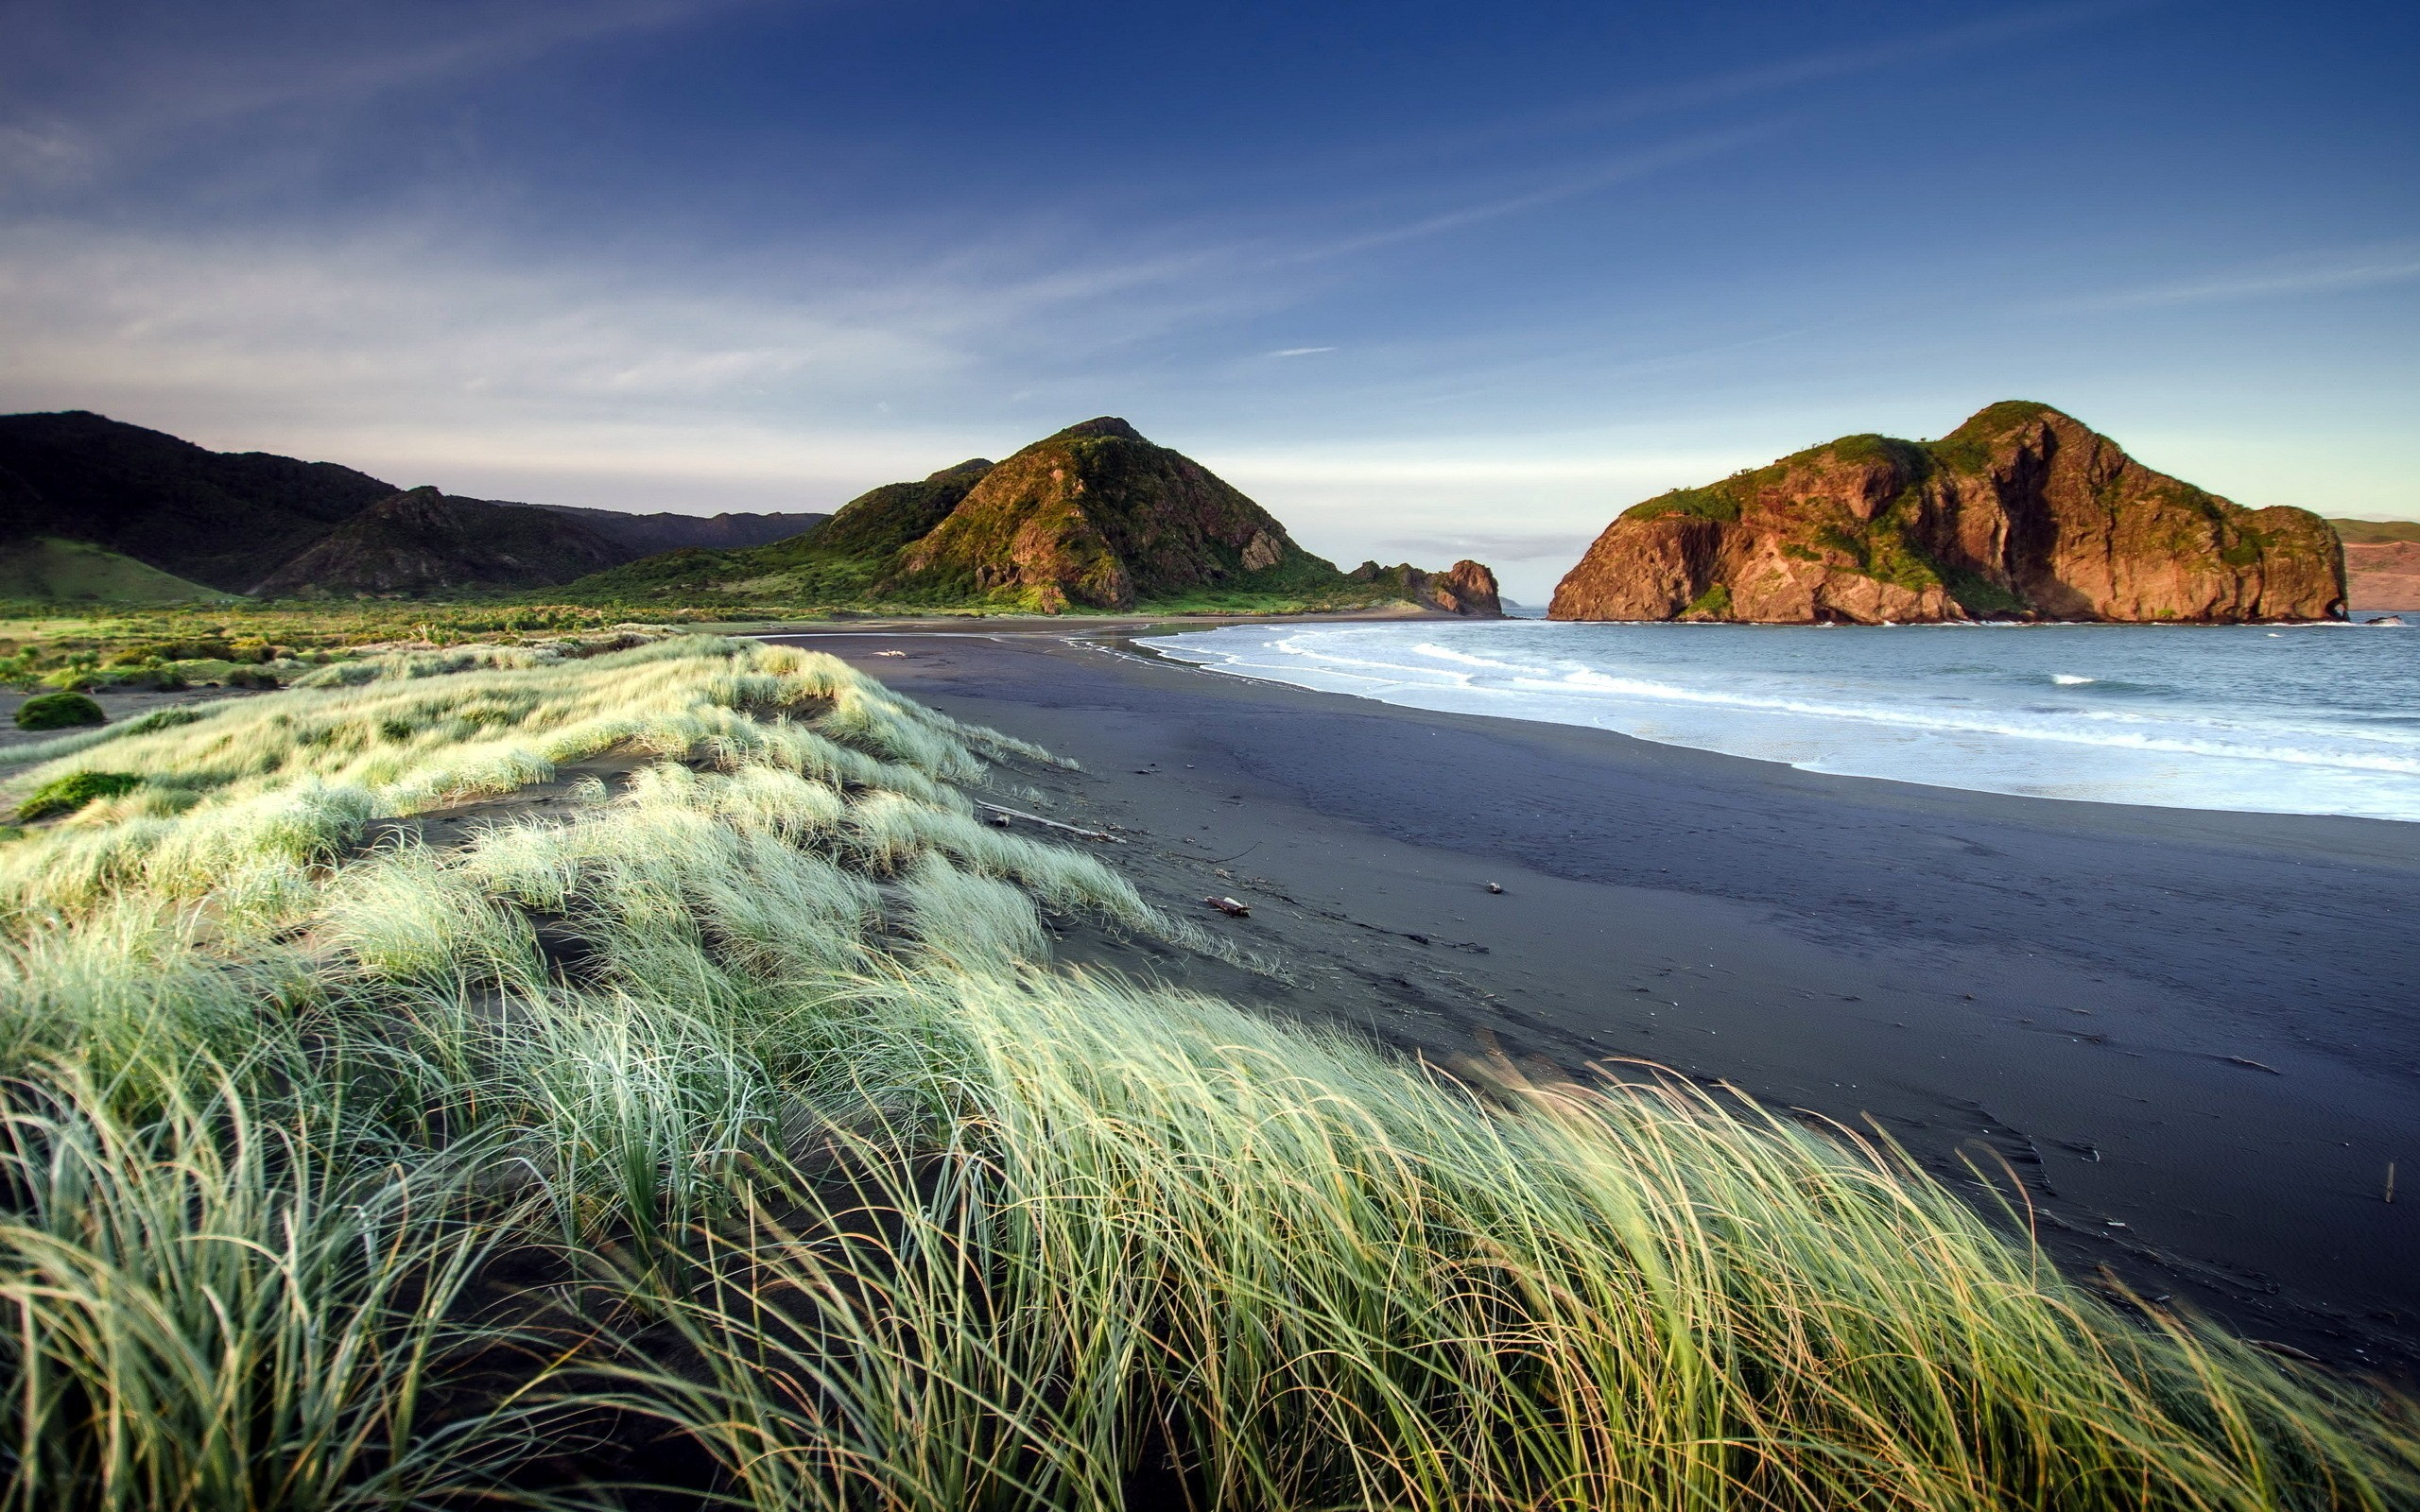 Sunny Beach New Ipad Wallpapers Daily New Ipad Wallpaper: New Zealand Wallpaper ·① Download Free Cool Backgrounds